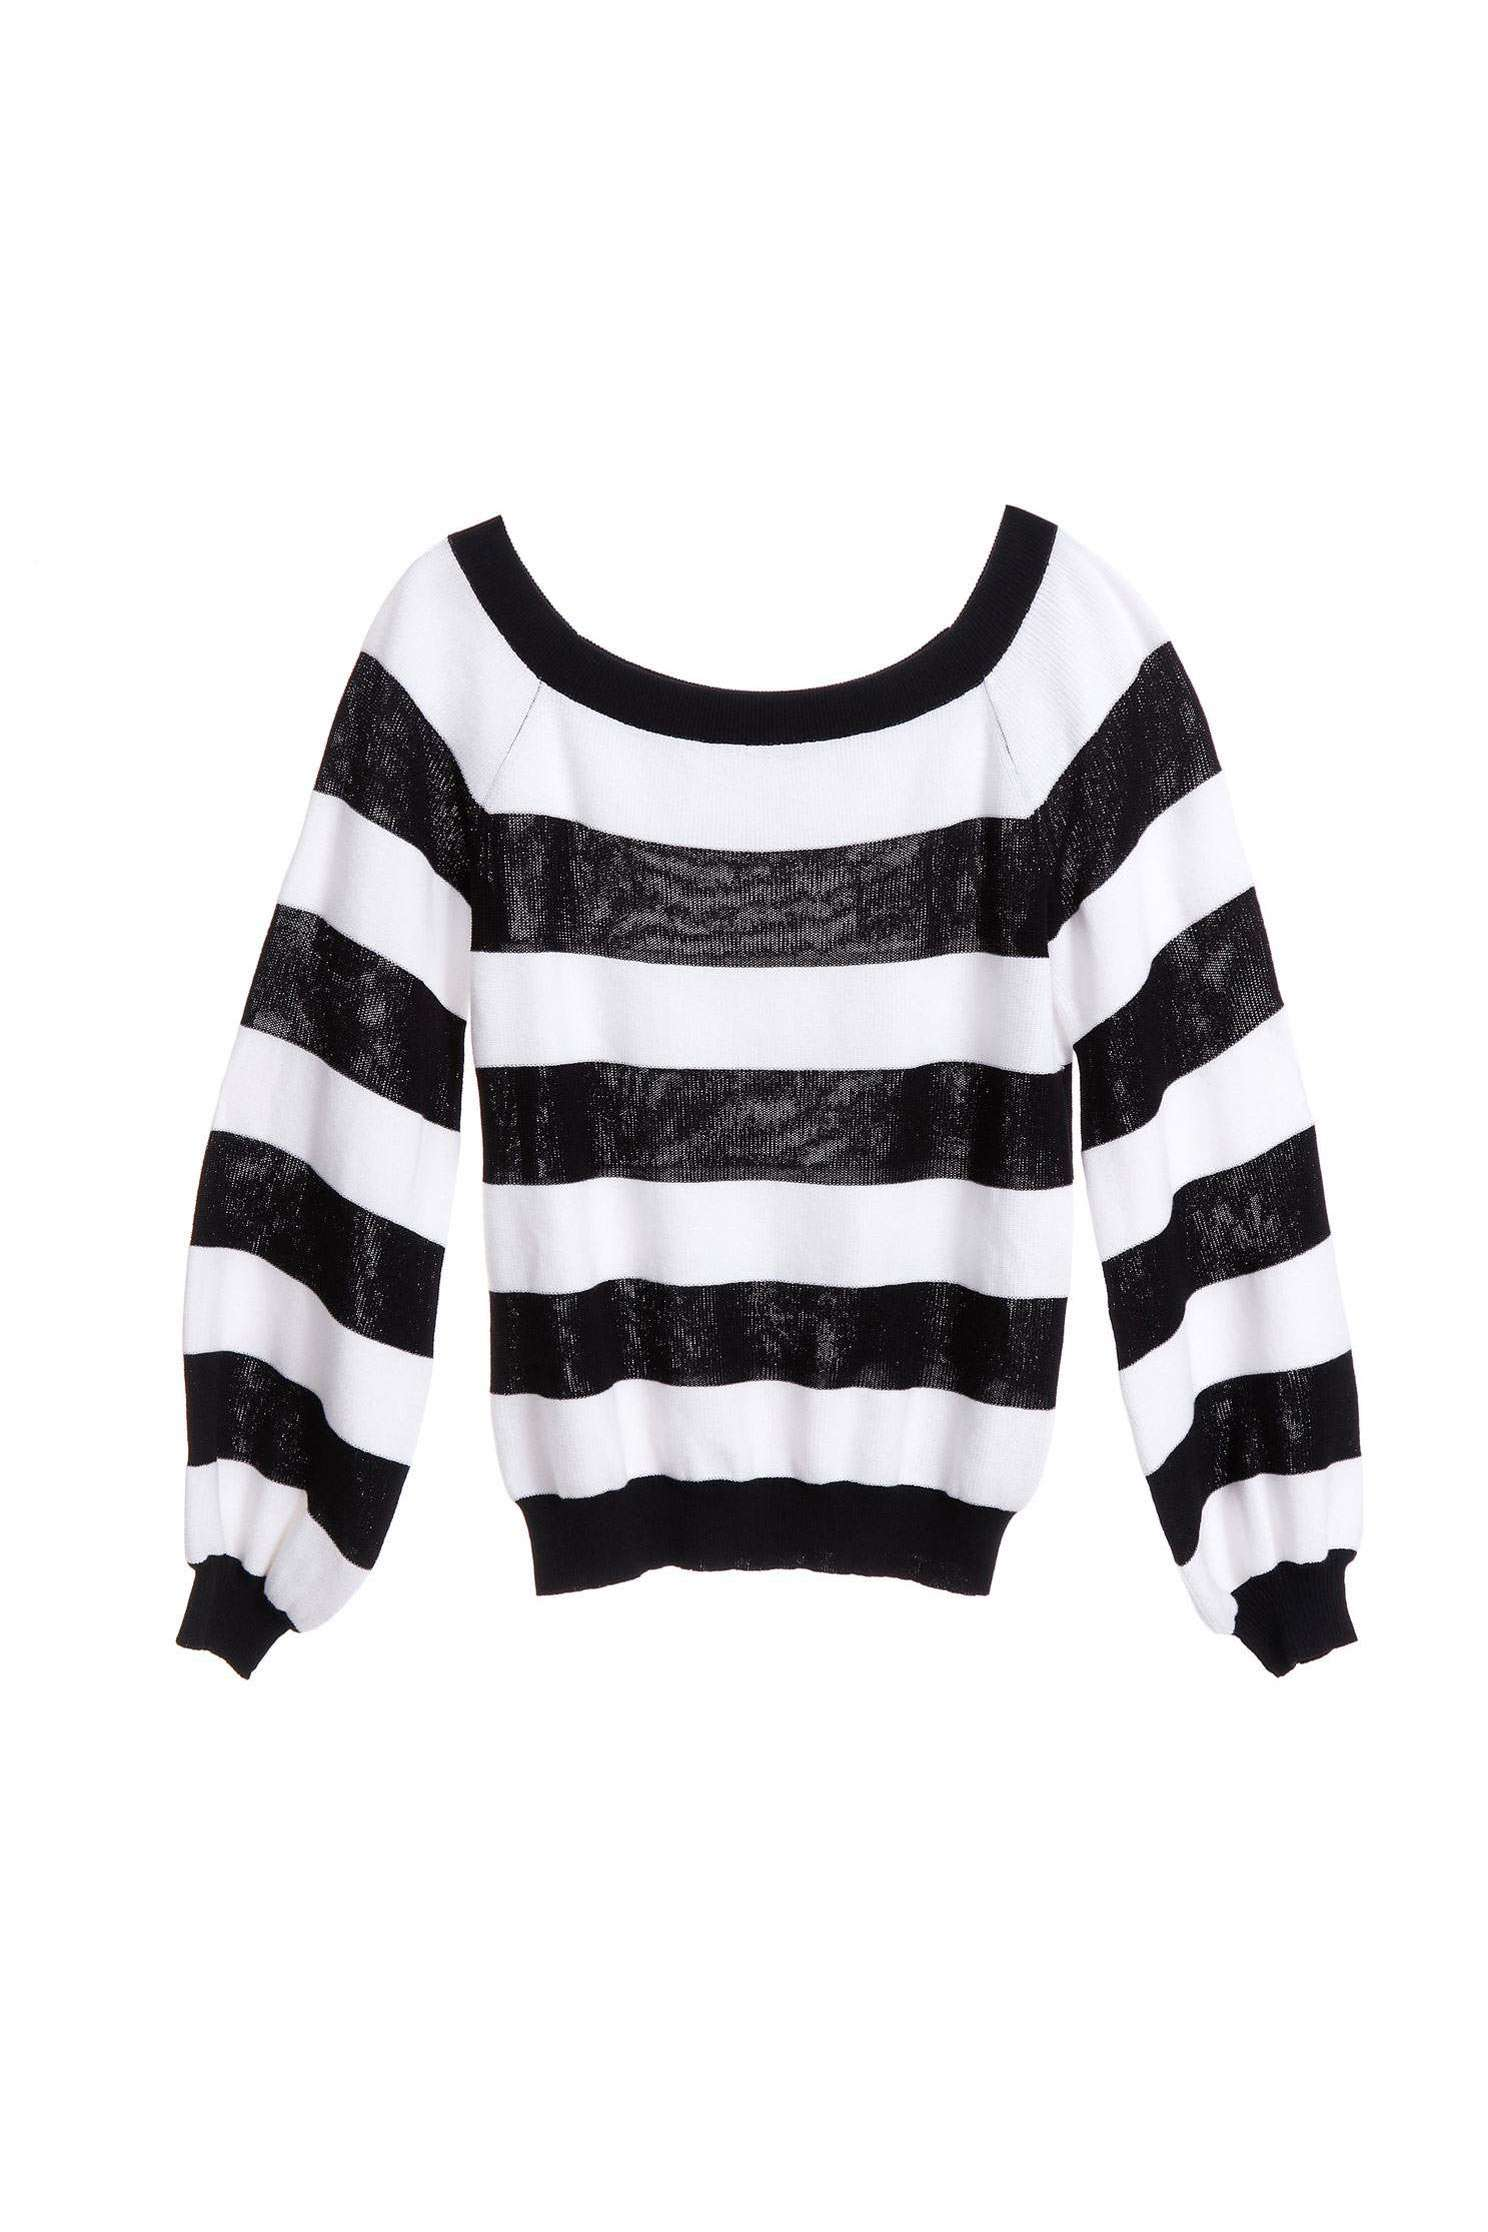 B&W stripes knitting top